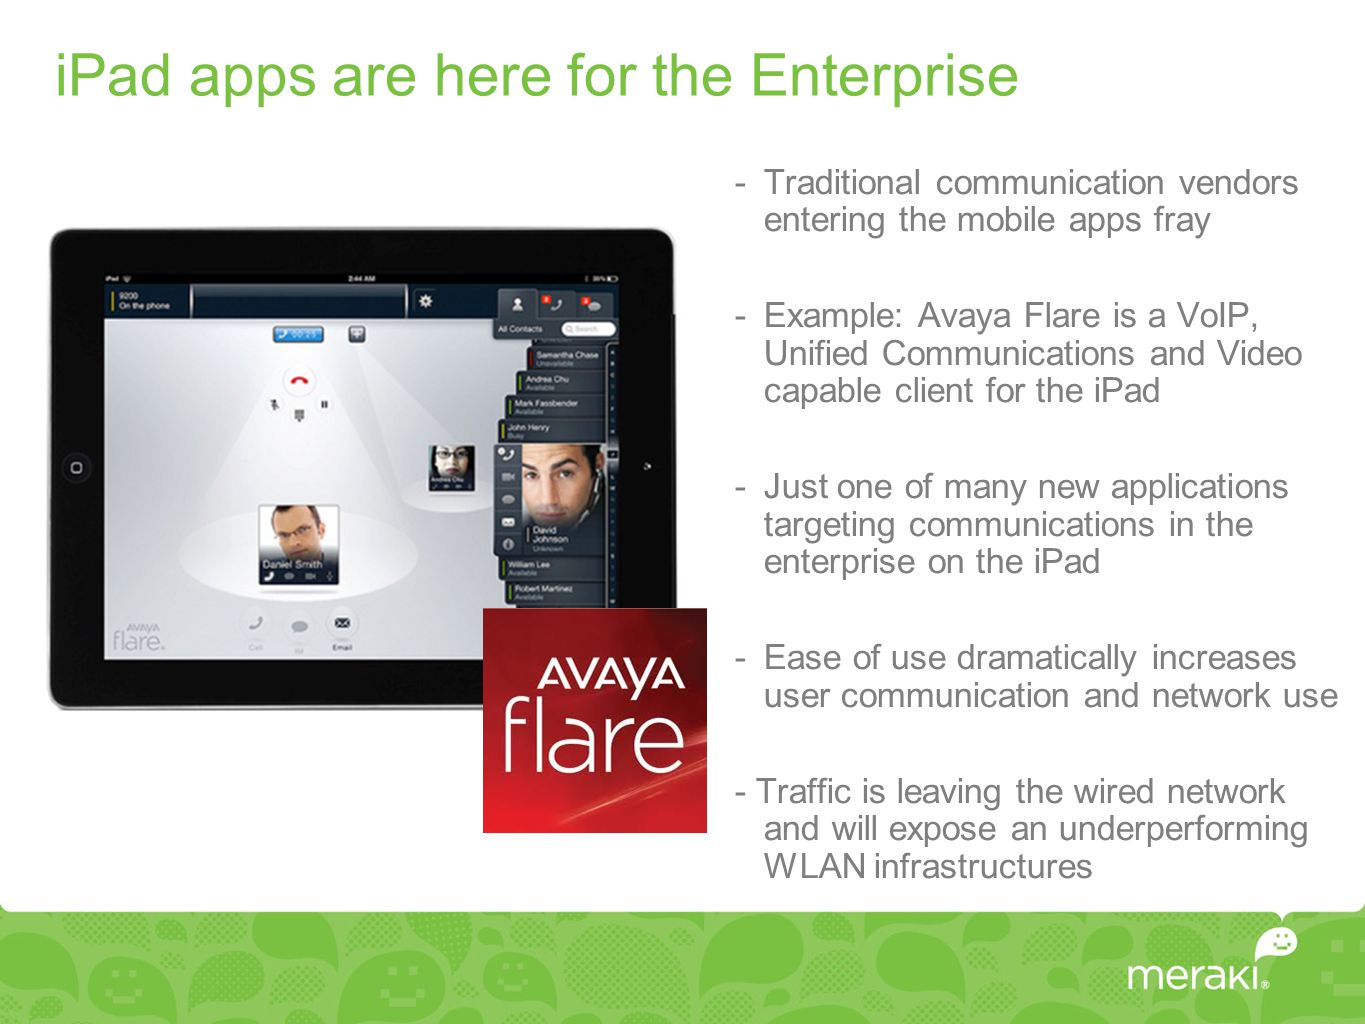 iPad apps are here for the Enterprise -Traditional communication vendors entering the mobile apps fray -Example: Avaya Flare is a VoIP, Unified Communications and Video capable client for the iPad -Just one of many new applications targeting communications in the enterprise on the iPad -Ease of use dramatically increases user communication and network use - Traffic is leaving the wired network and will expose an underperforming WLAN infrastructures